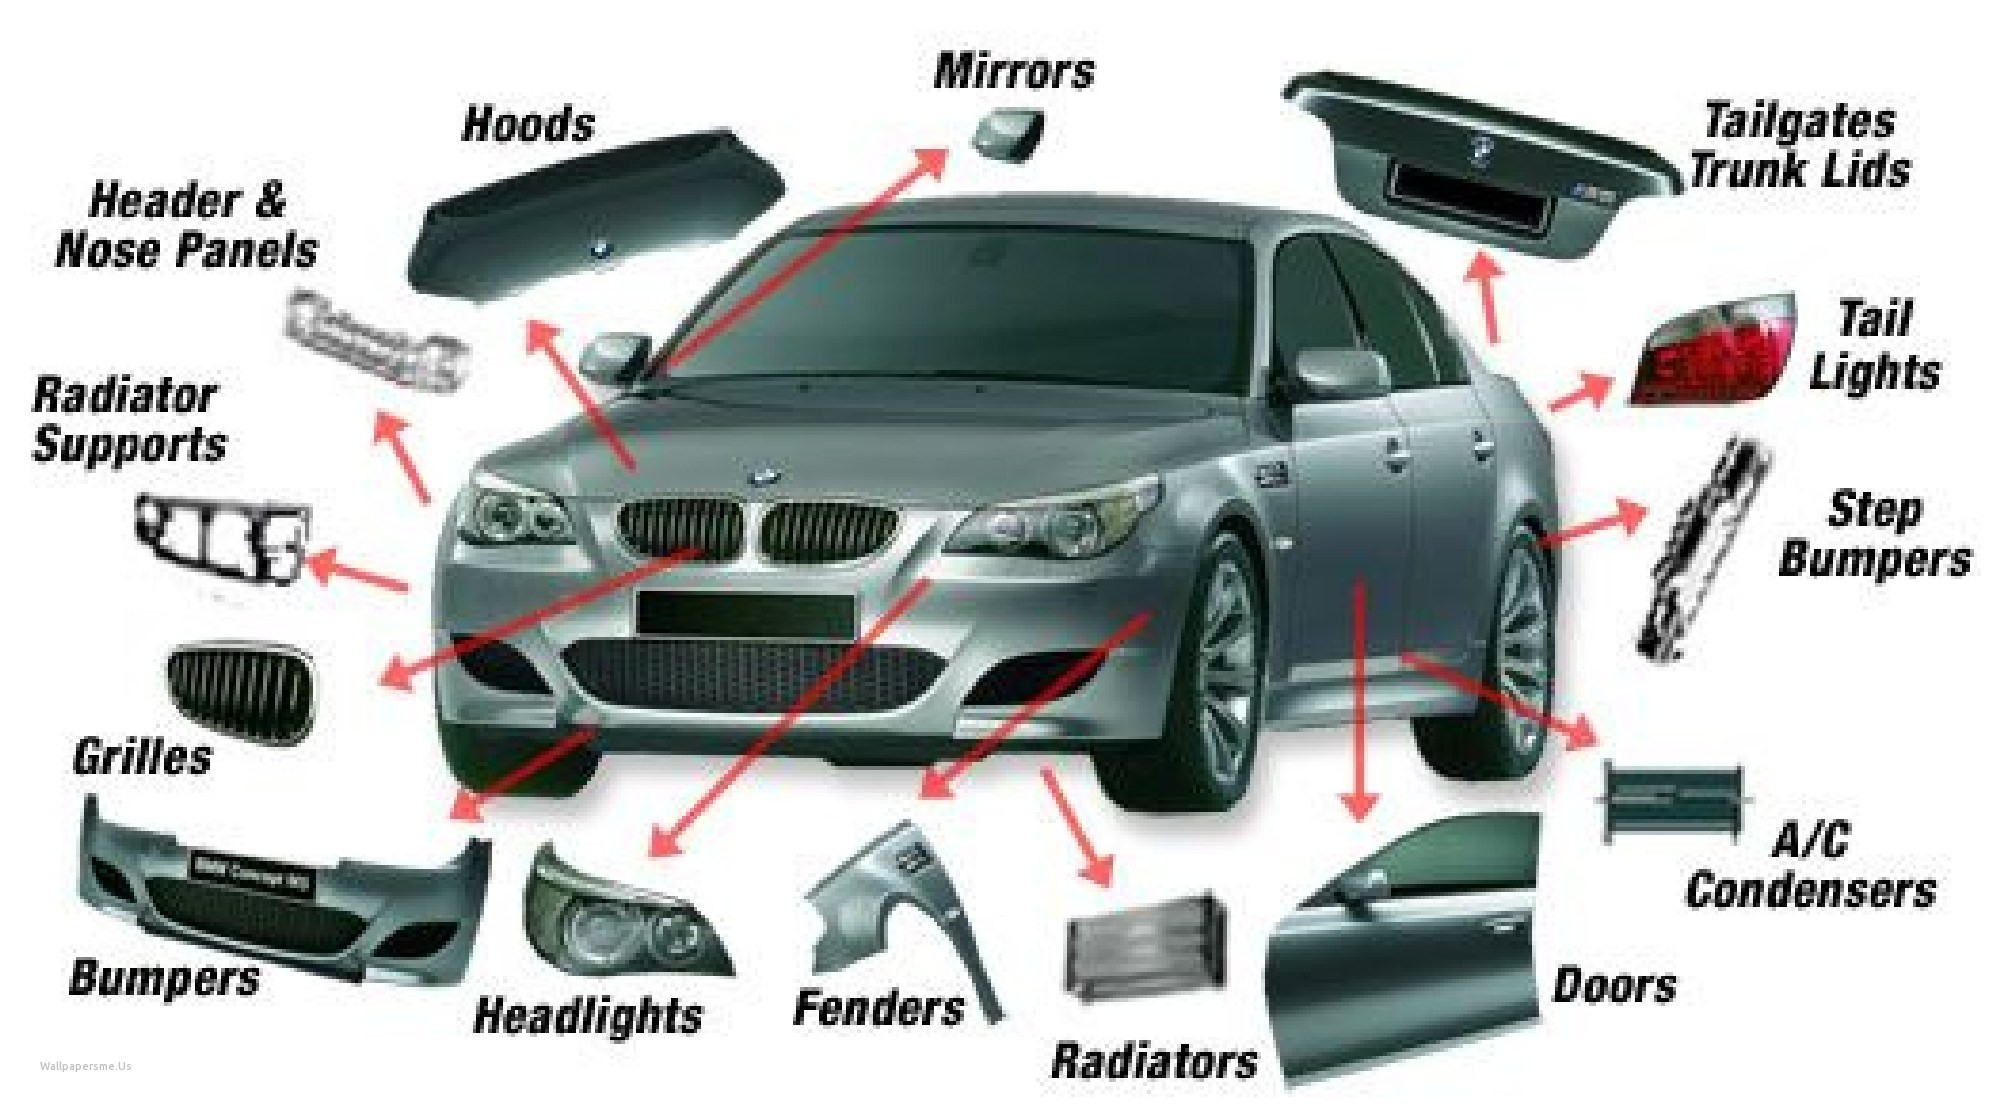 Car Parts Diagram Pdf Car Parts Names with Diagram Pdf Of Car Parts Diagram Pdf